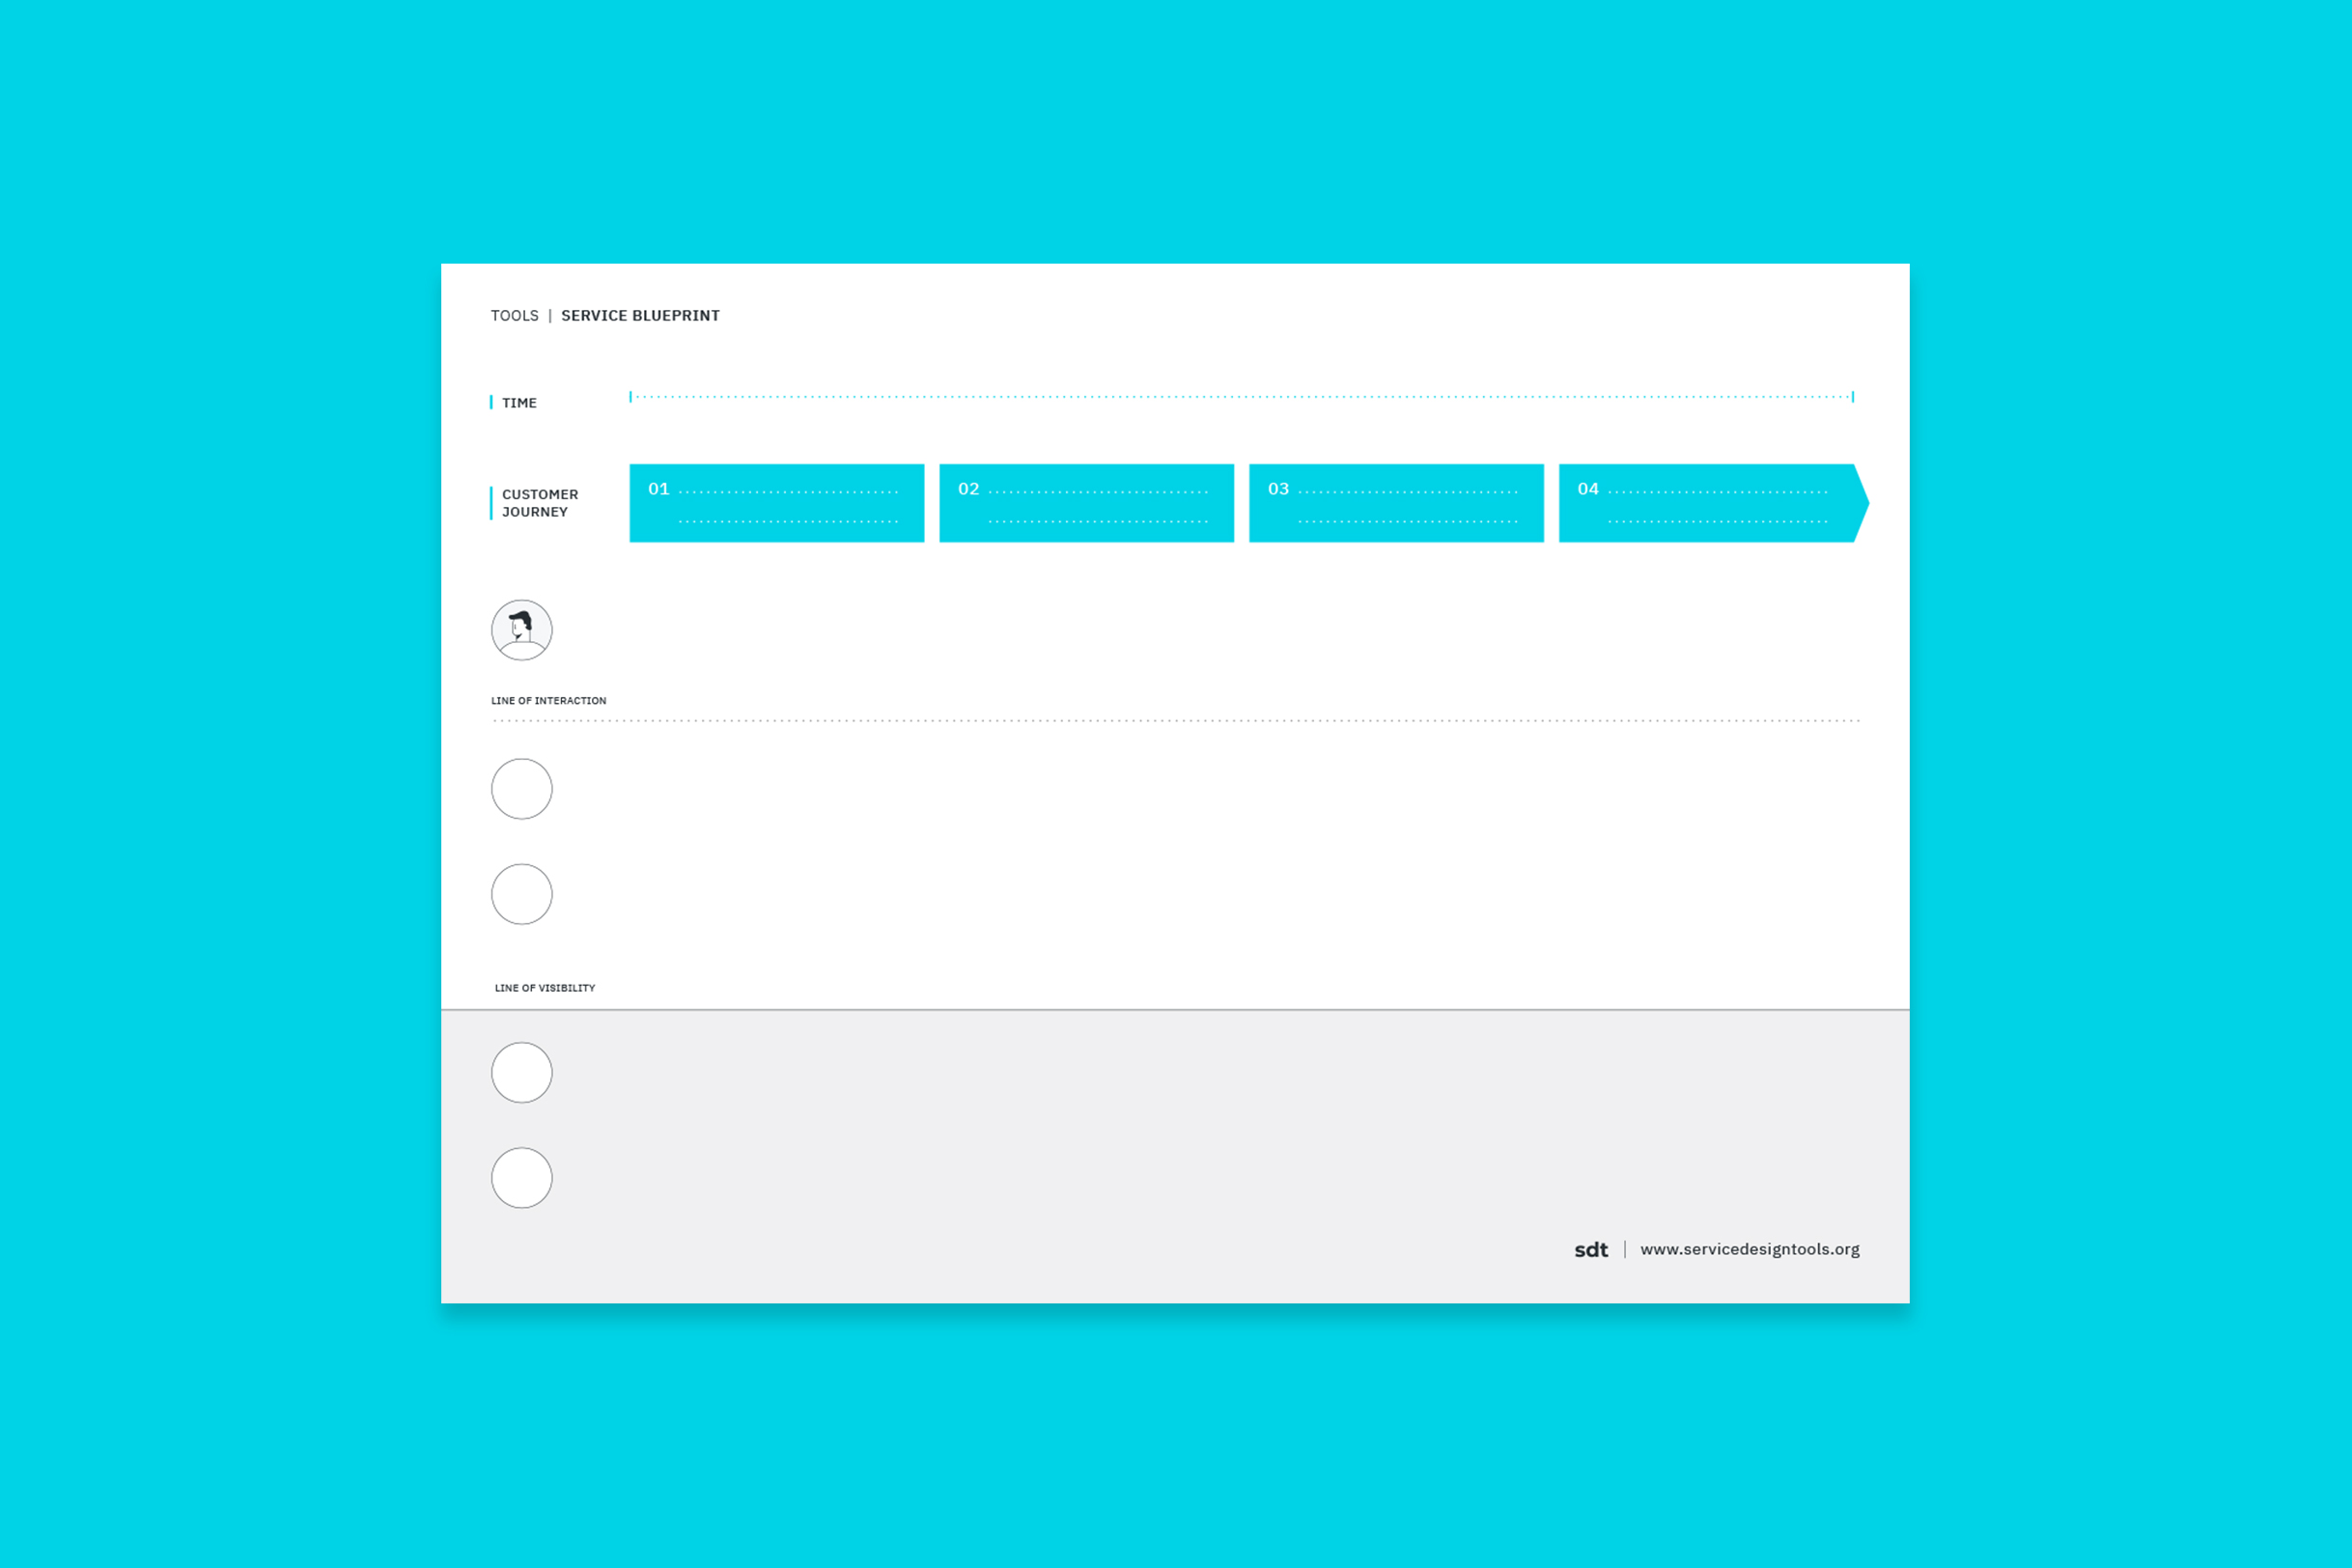 Preview image of the template for Service Blueprint